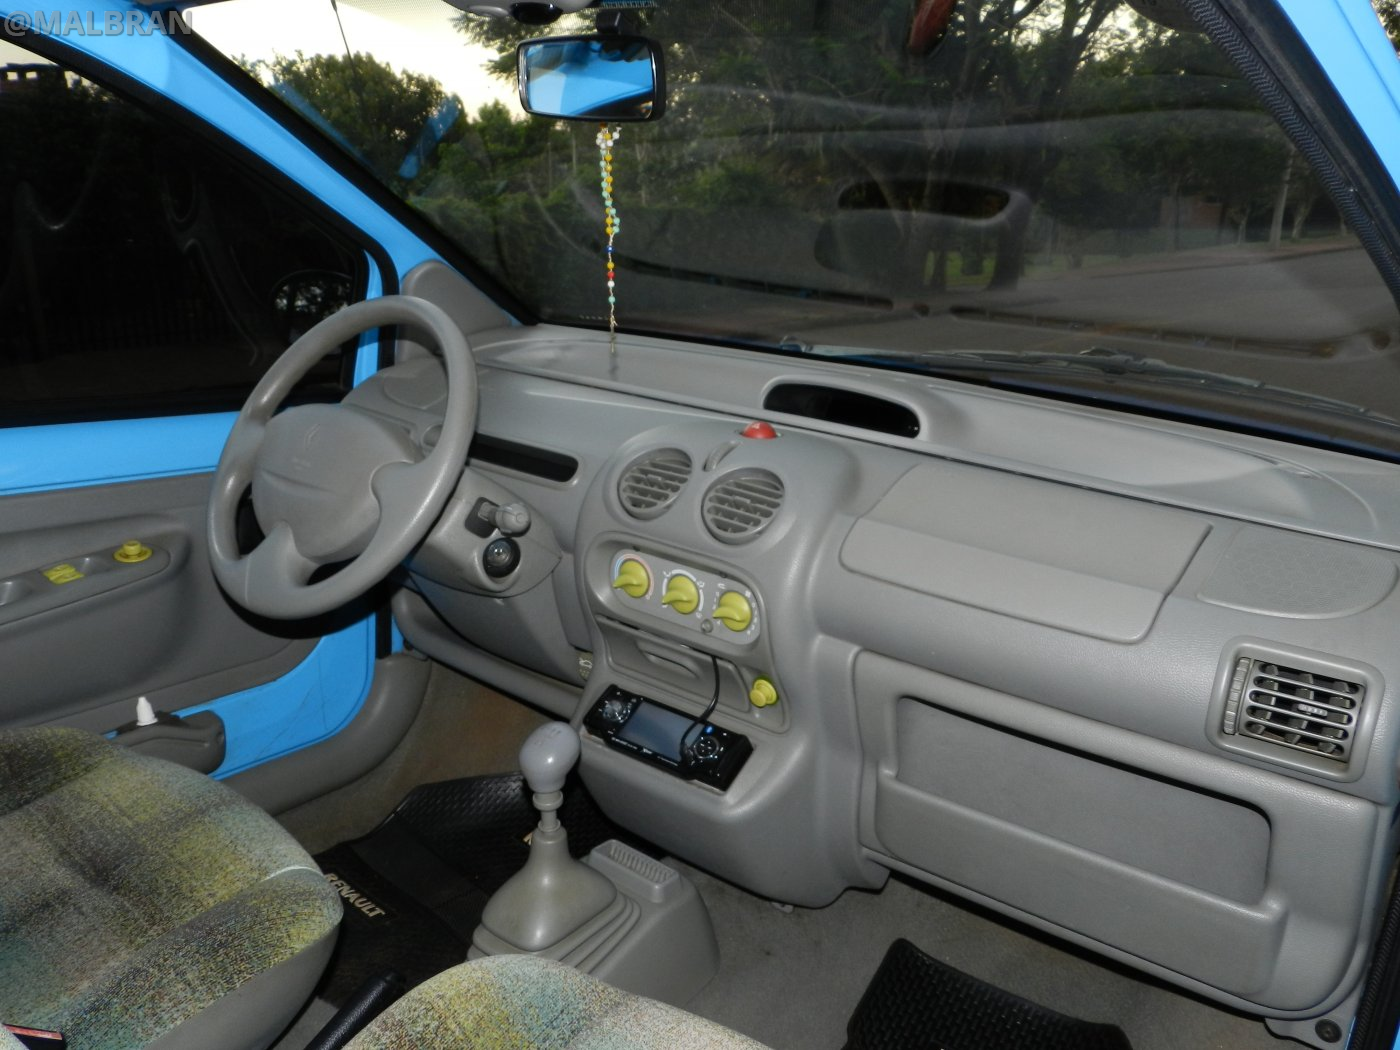 renault twingo auto car automovil tuning modificado azul blue celeste interior. Black Bedroom Furniture Sets. Home Design Ideas